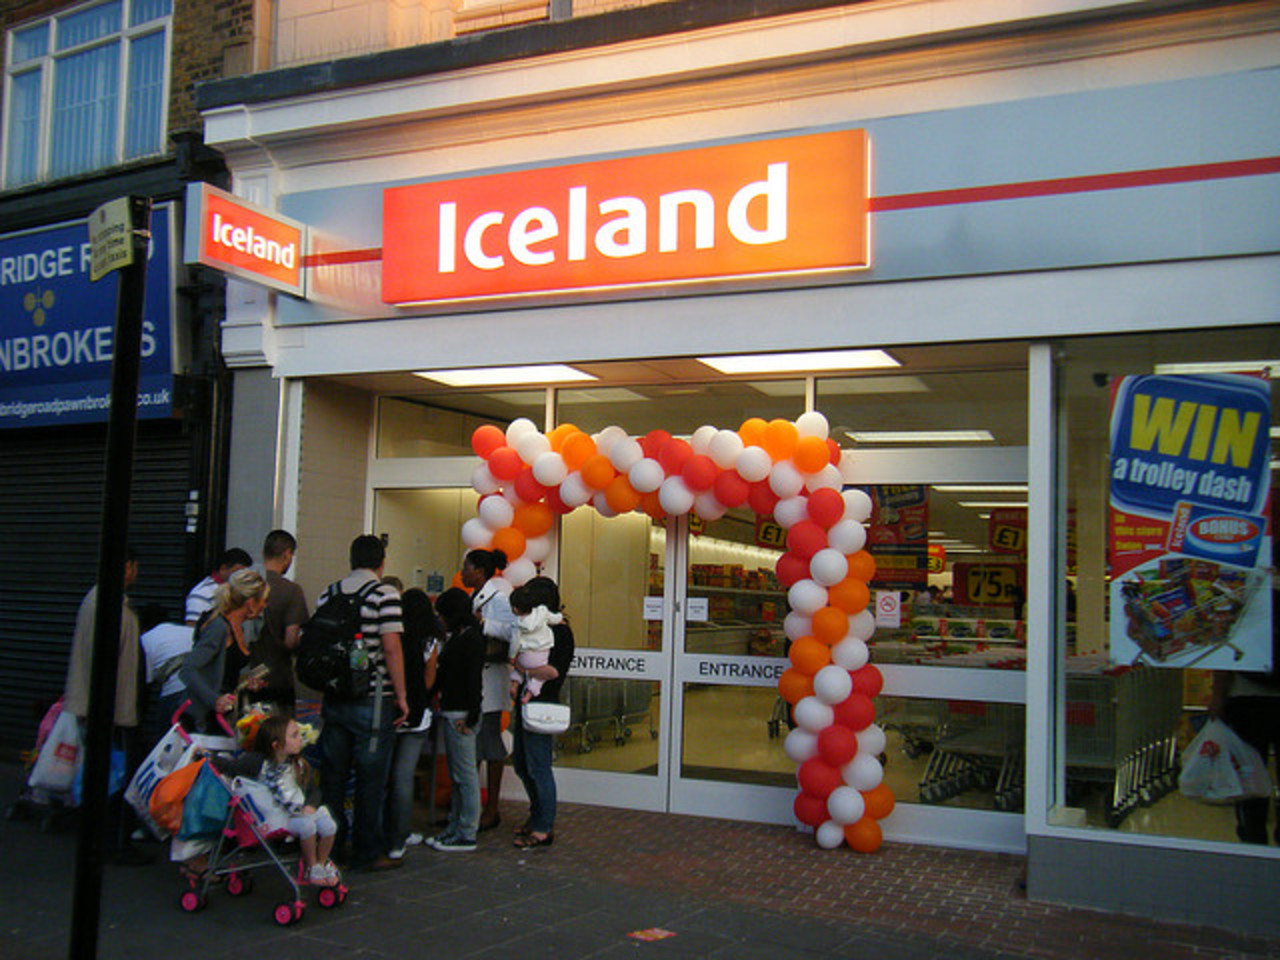 New Leyton Iceland Store - Grand Opening, 24 Sep 2009 | Flickr ...